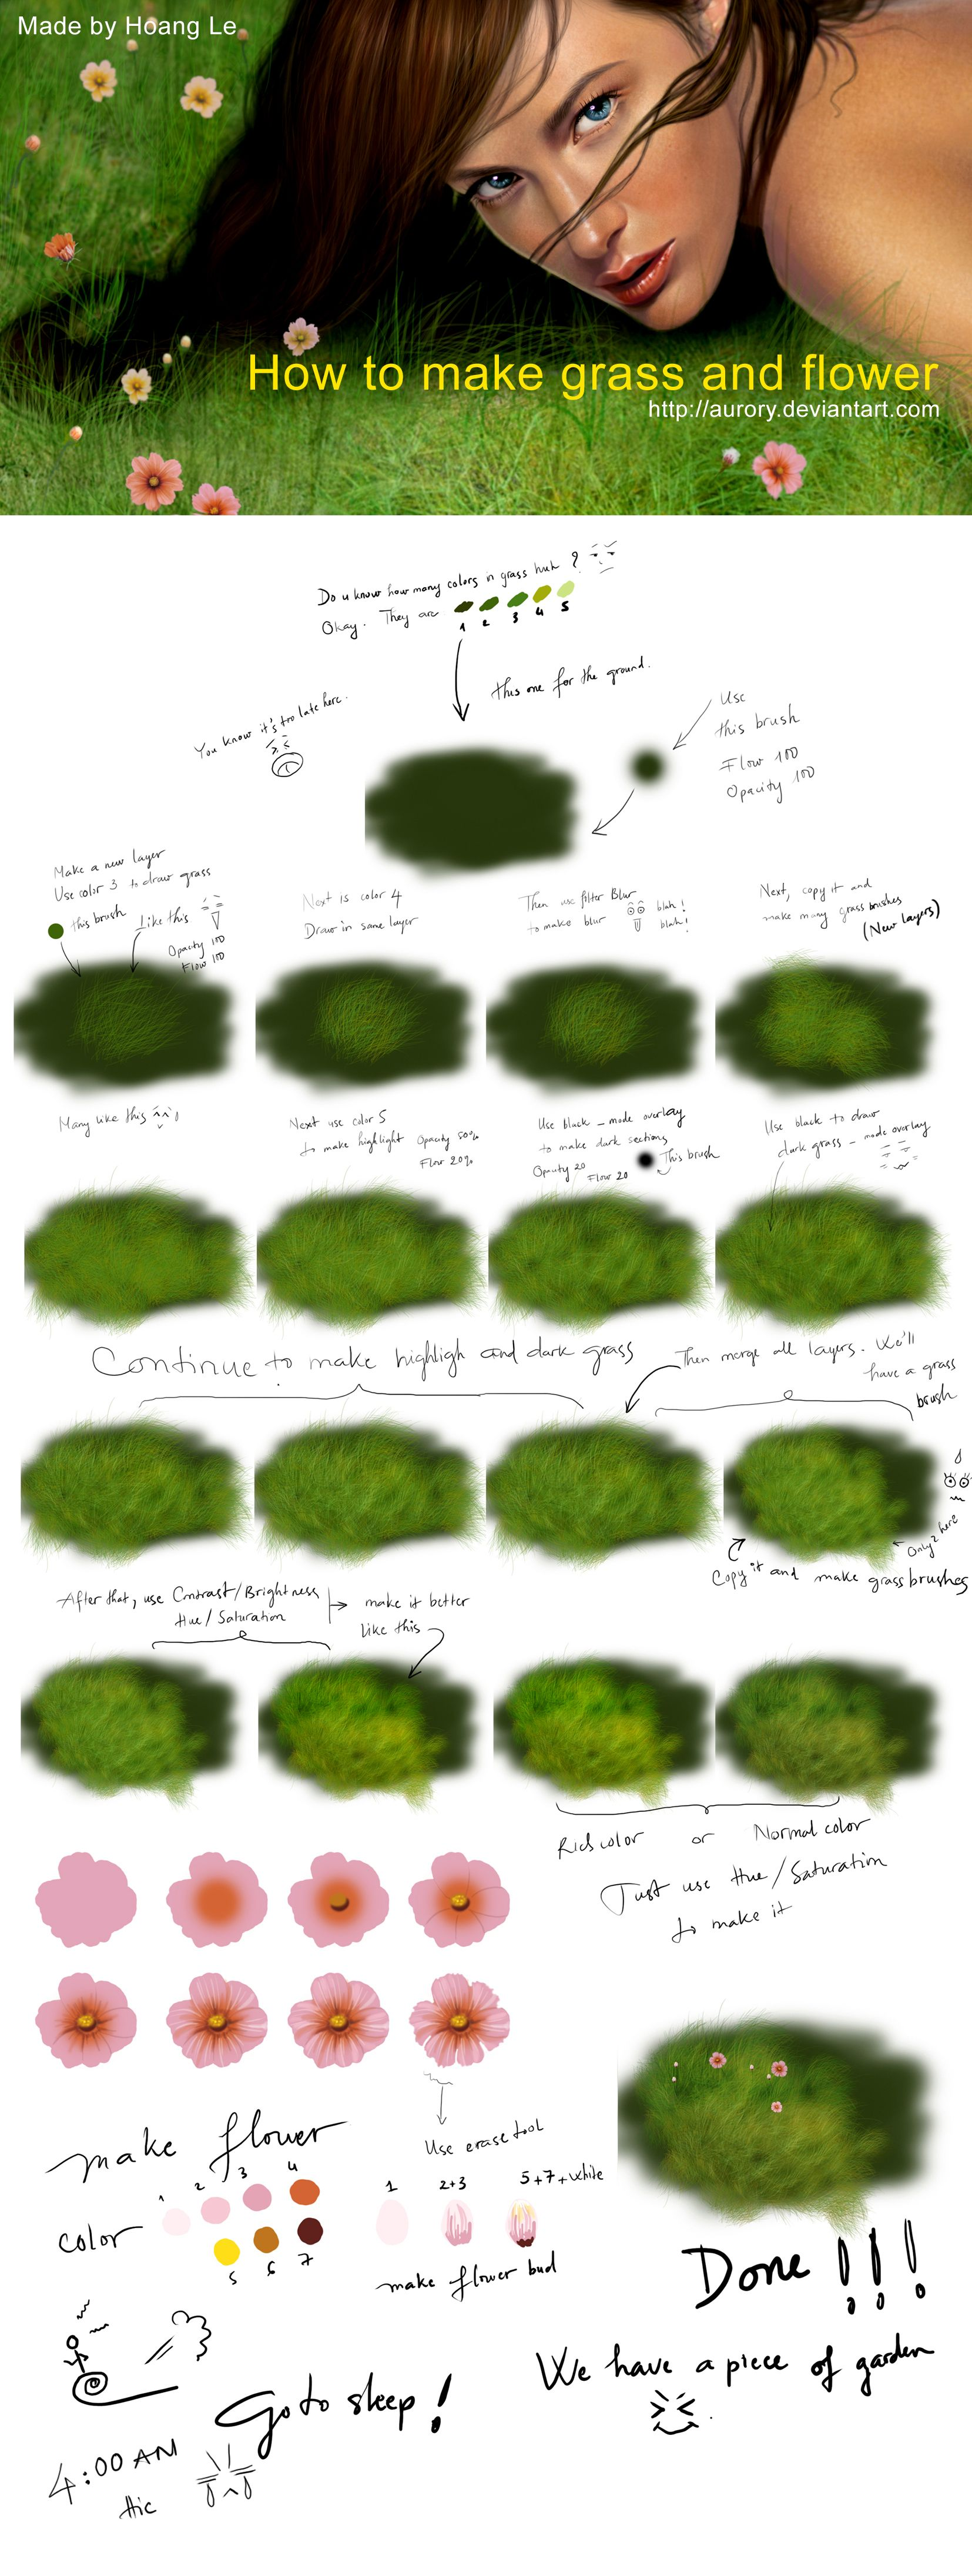 Photoshop digital painting tutorial how to create realistic grass photoshop digital painting tutorial how to create realistic grass and flowers i love this one baditri Image collections